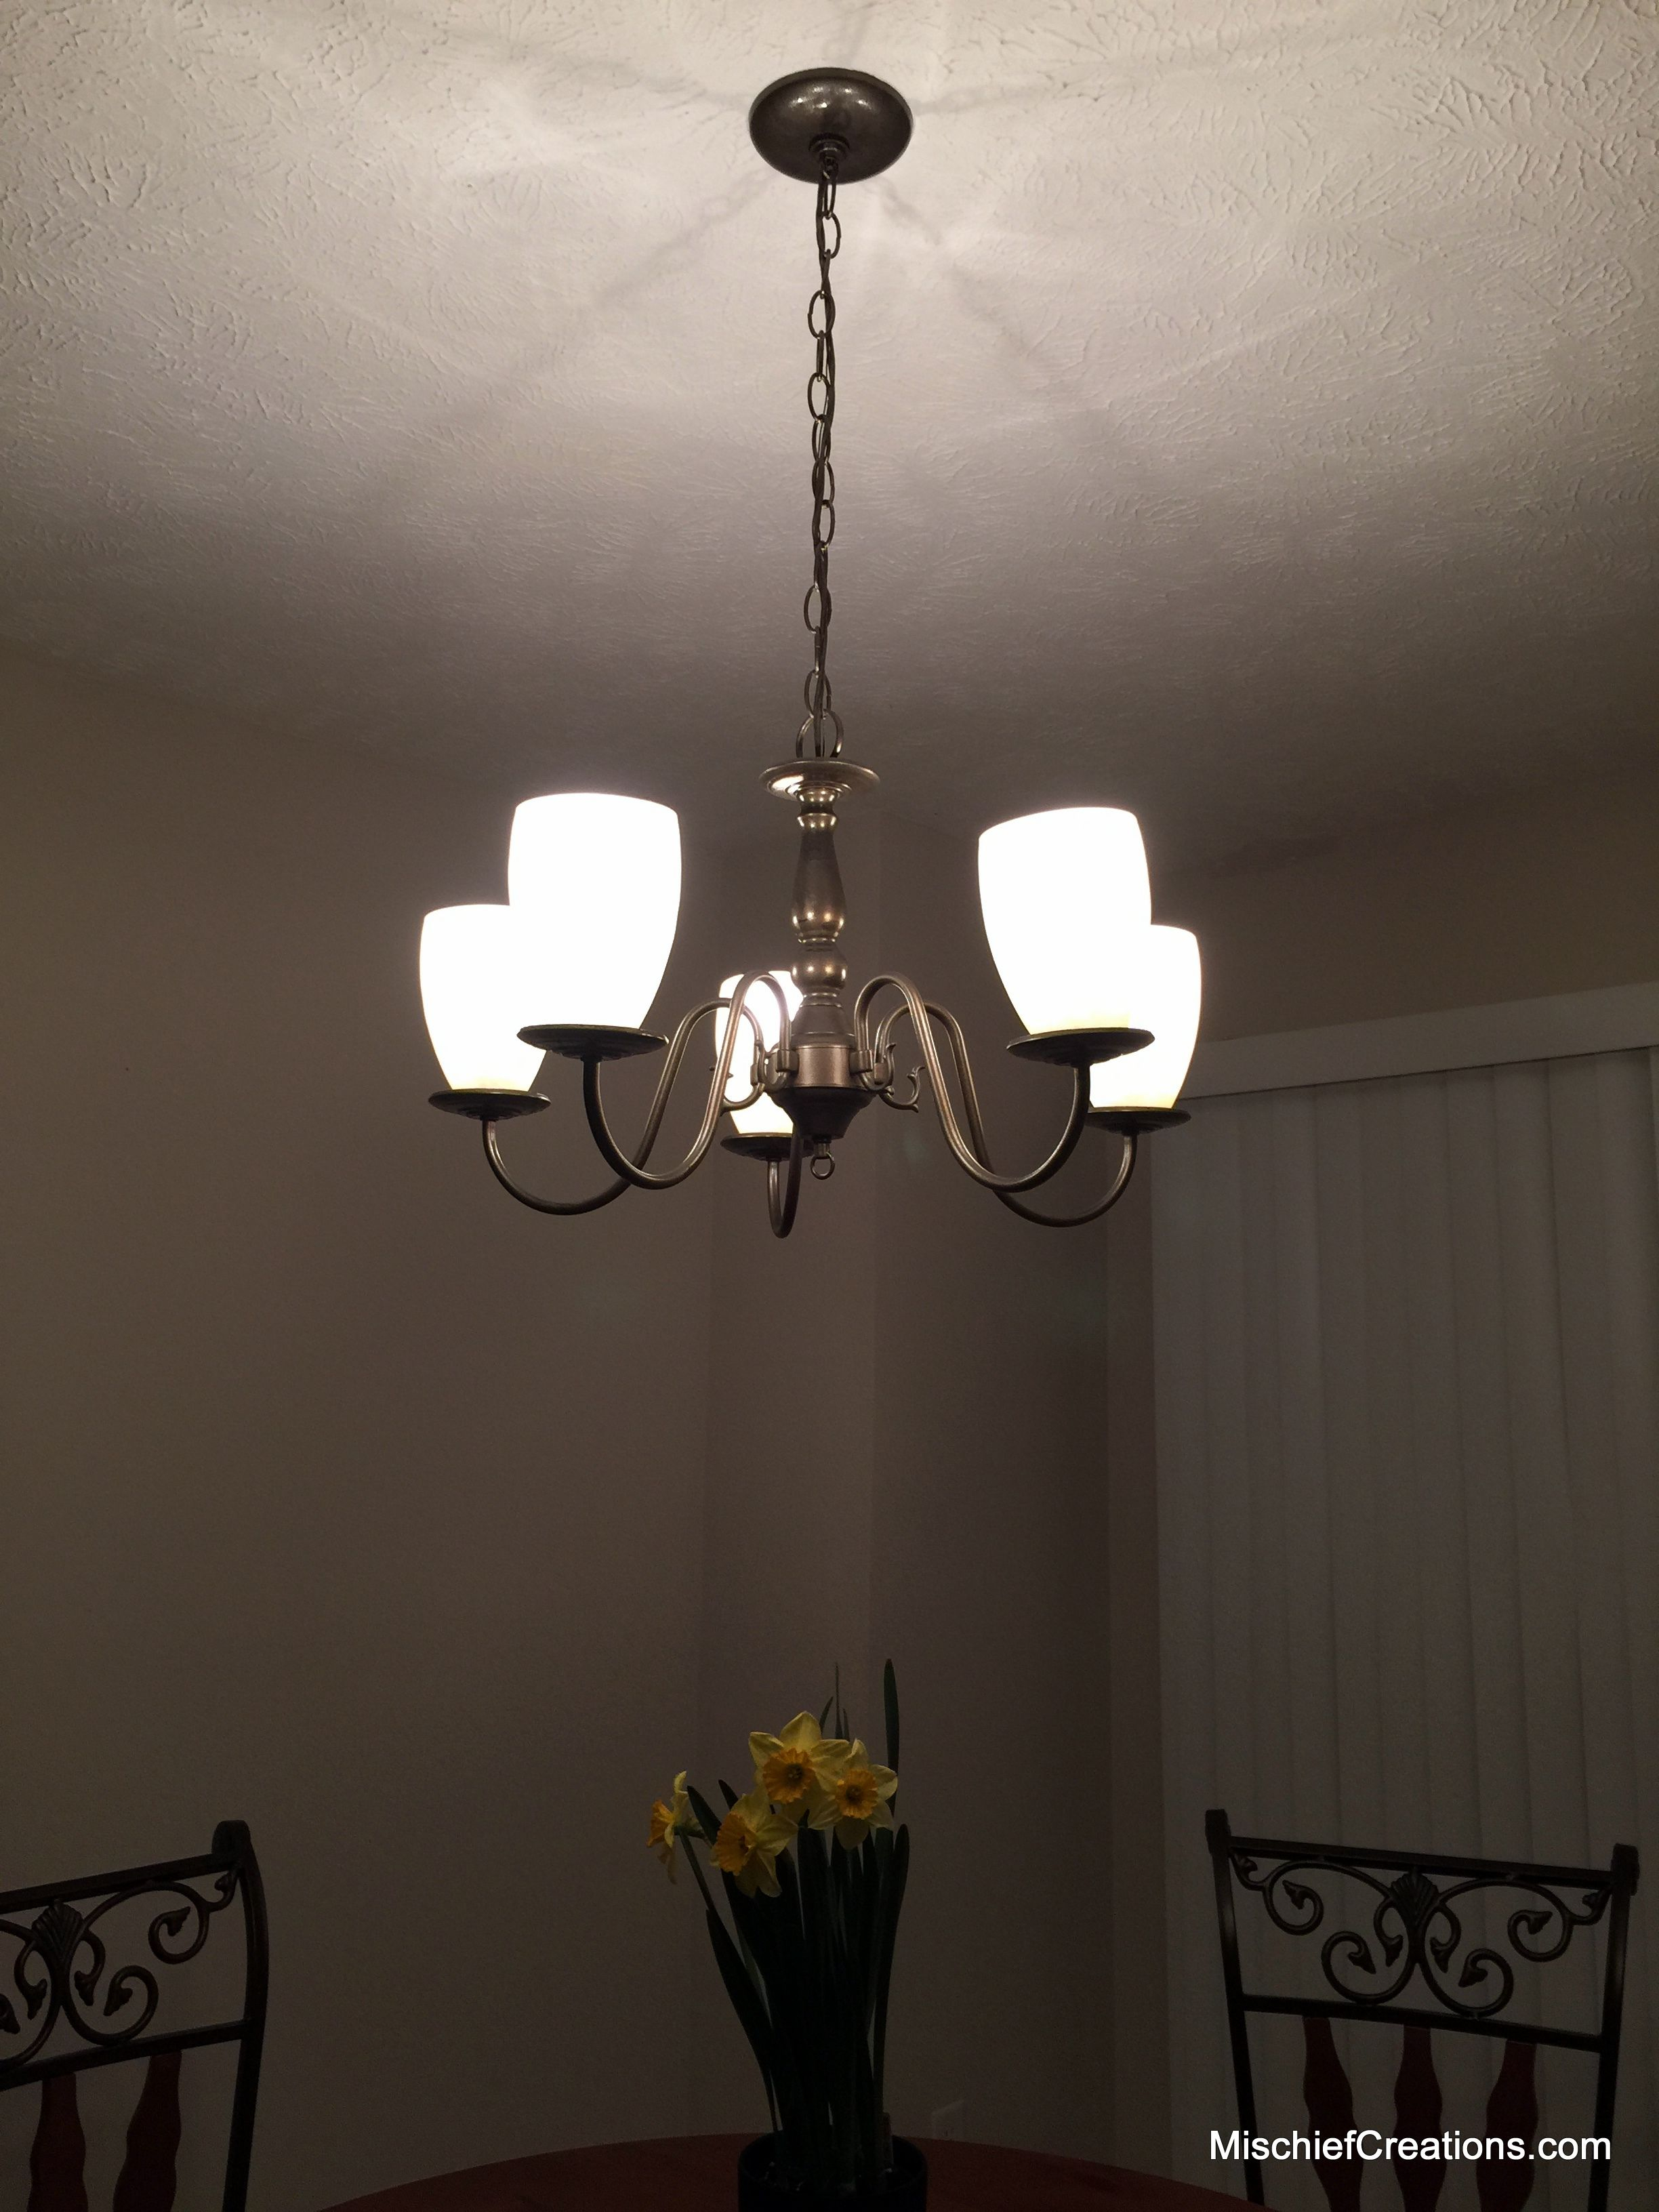 Lighted After Spray Paint Brass Chandelier Makeover